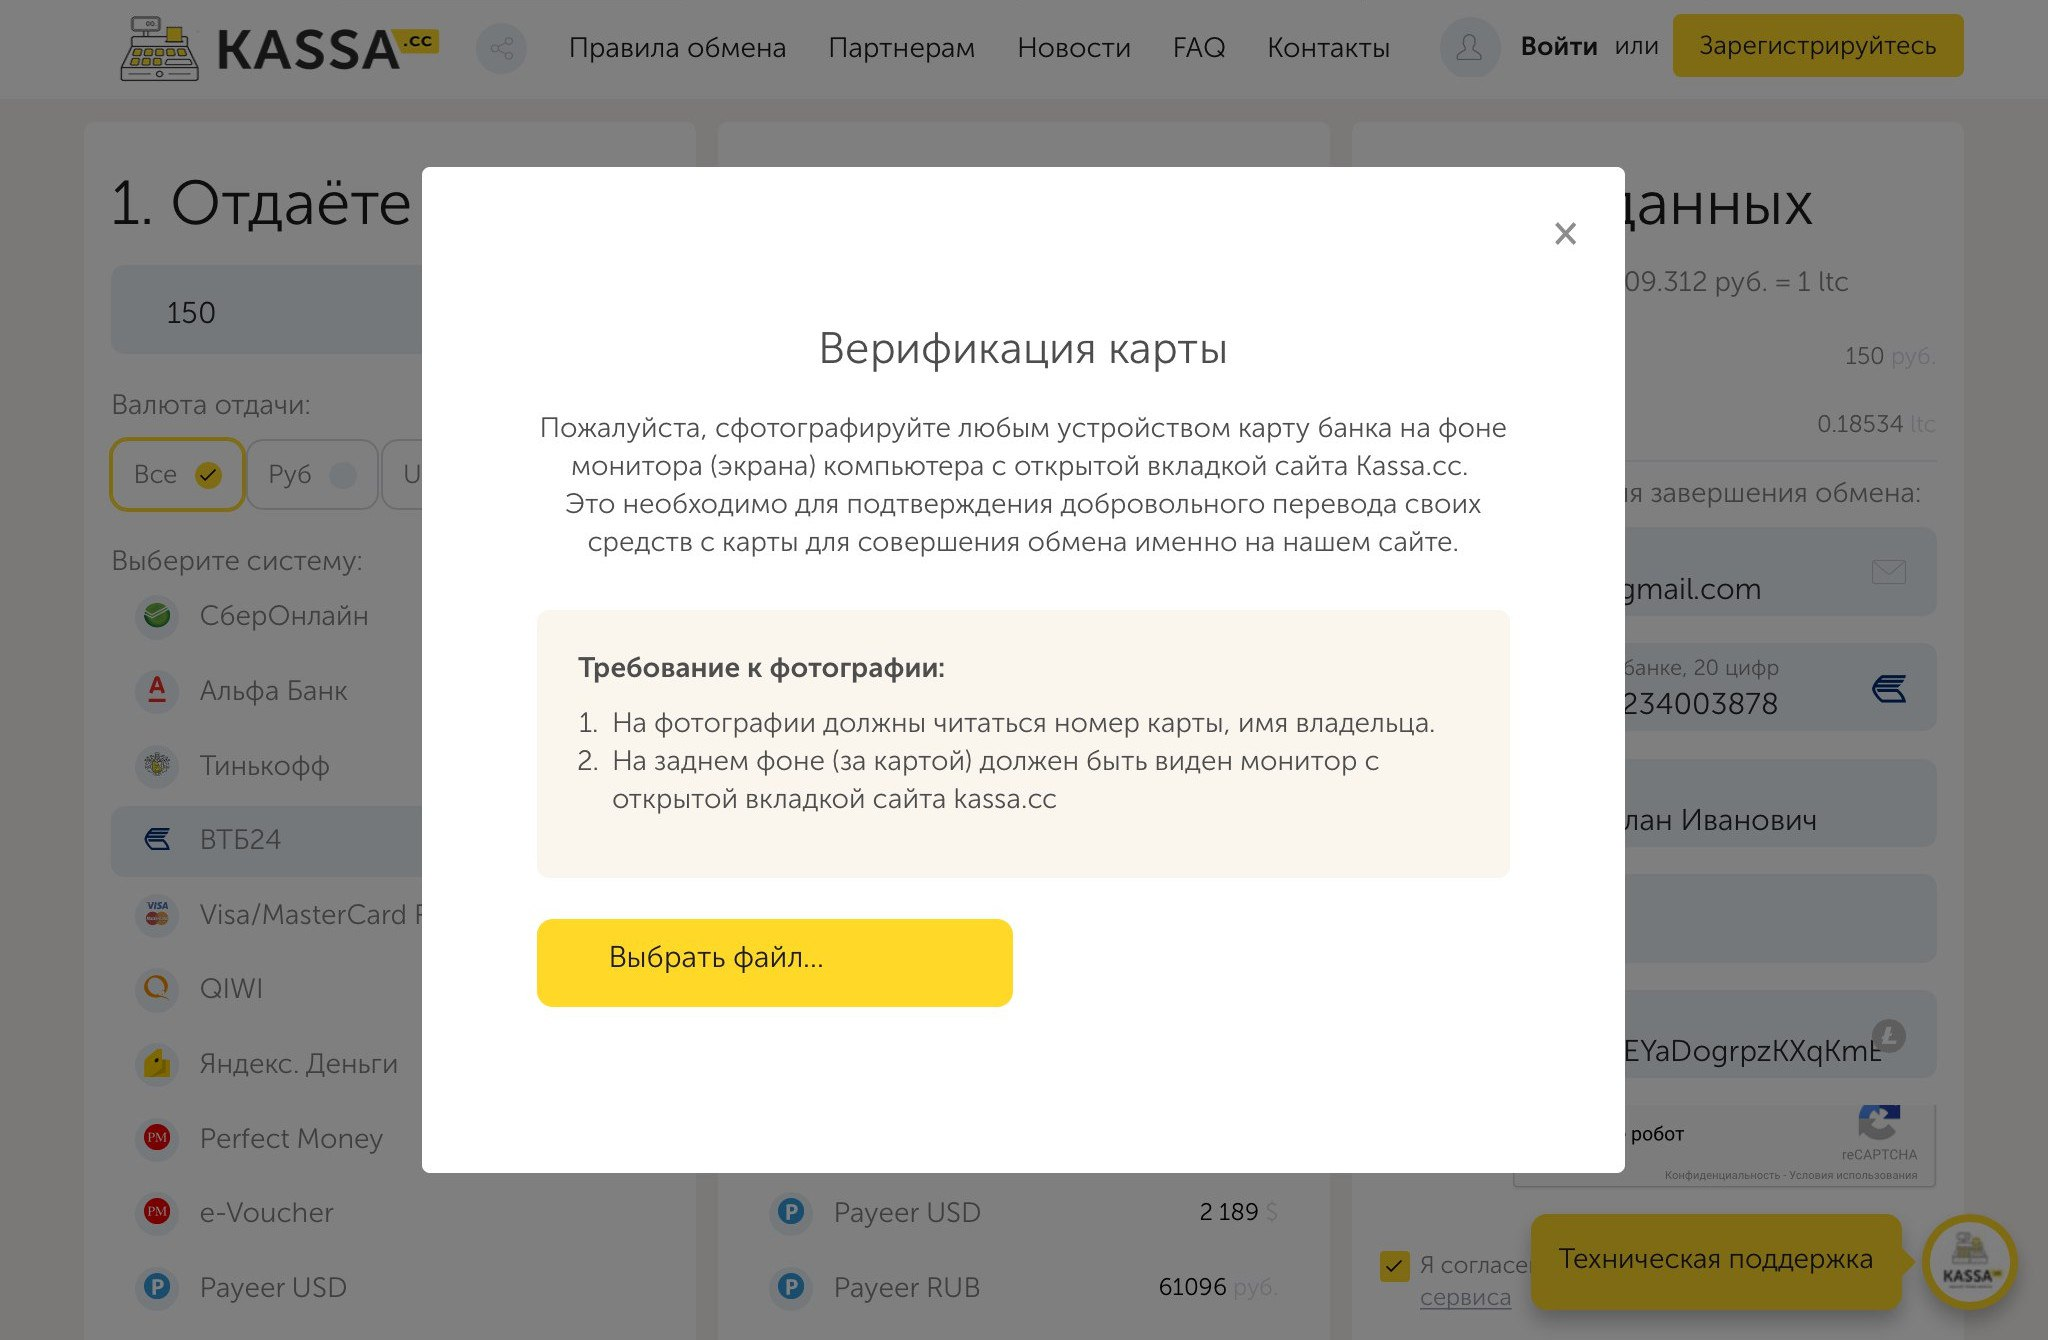 How to check the VTB card